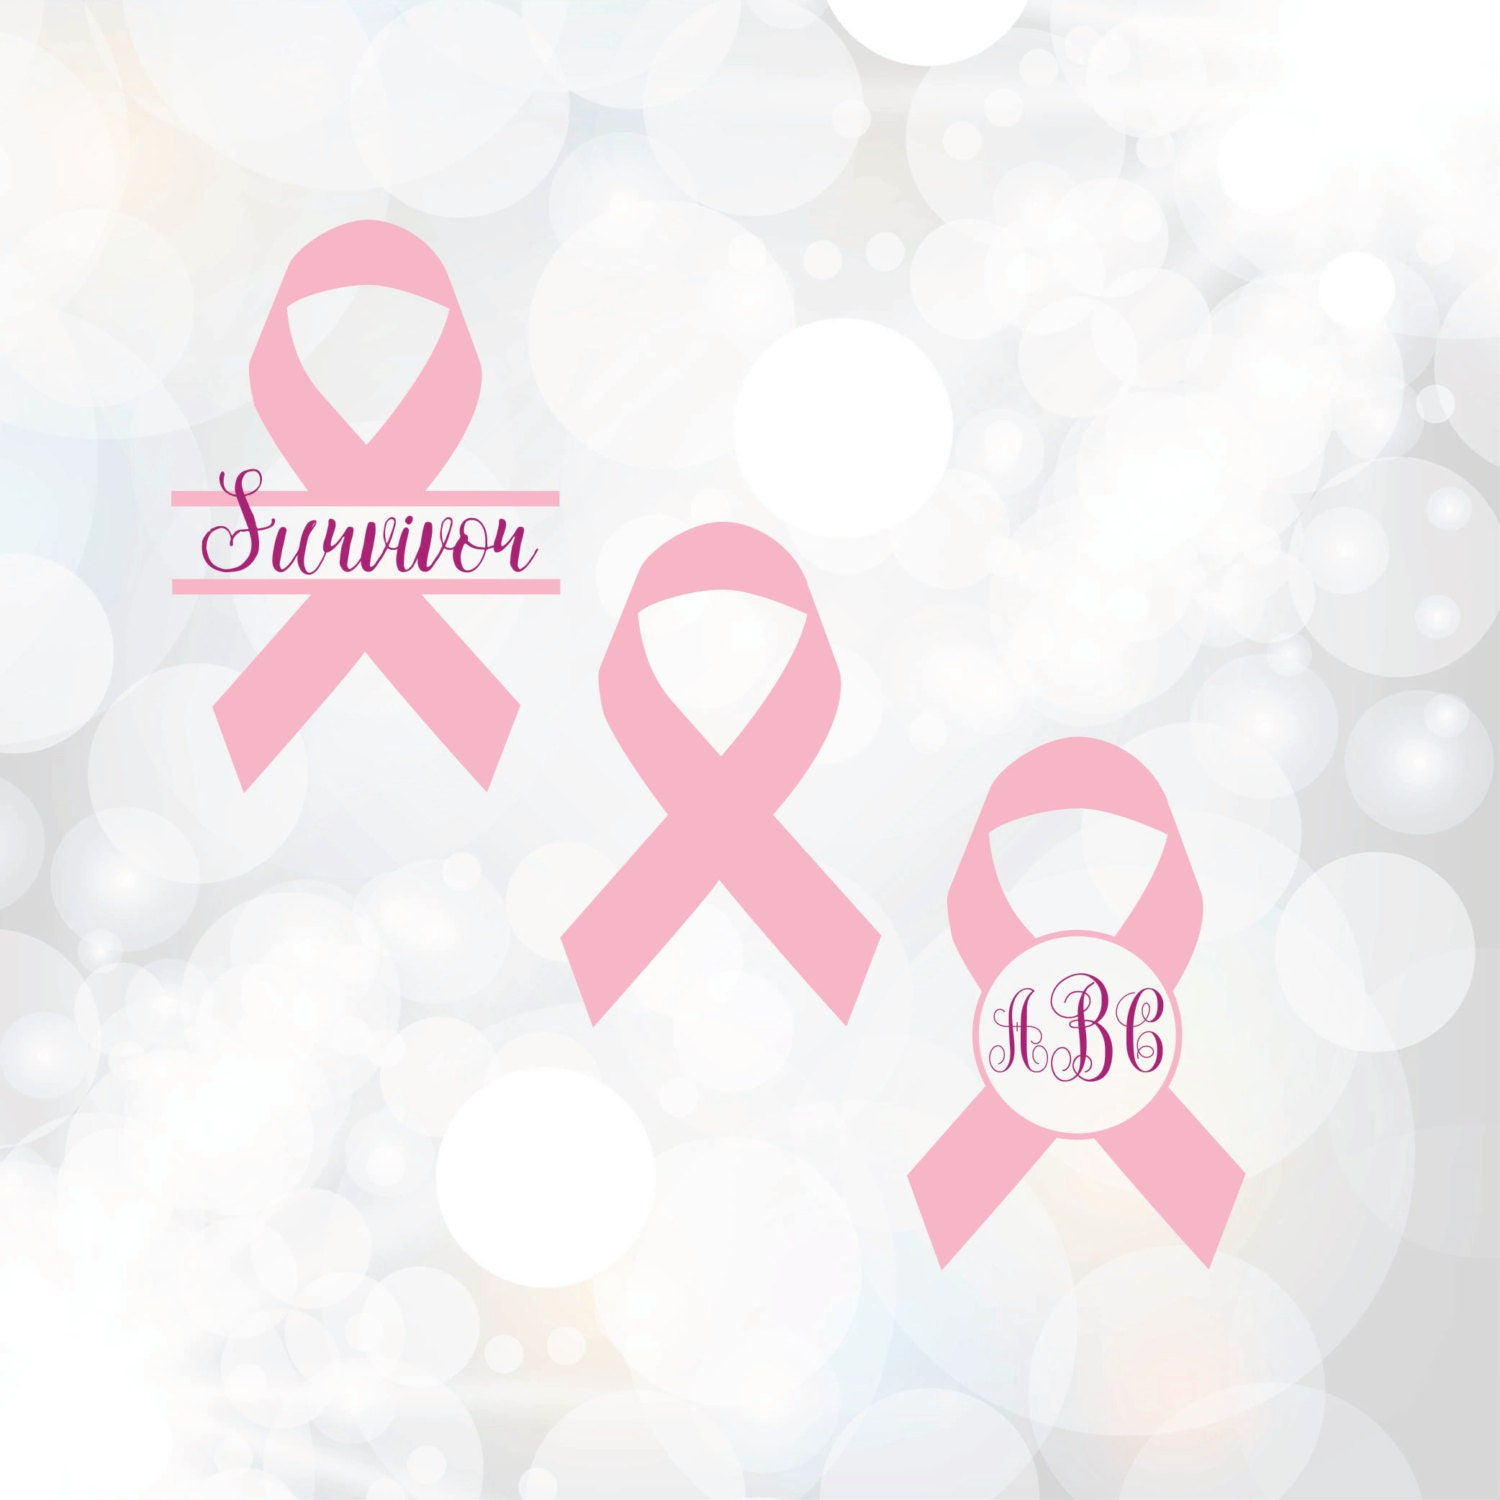 breast cancer ribbon svg - pink ribbon monogram frame - breast cancer awareness ribbon